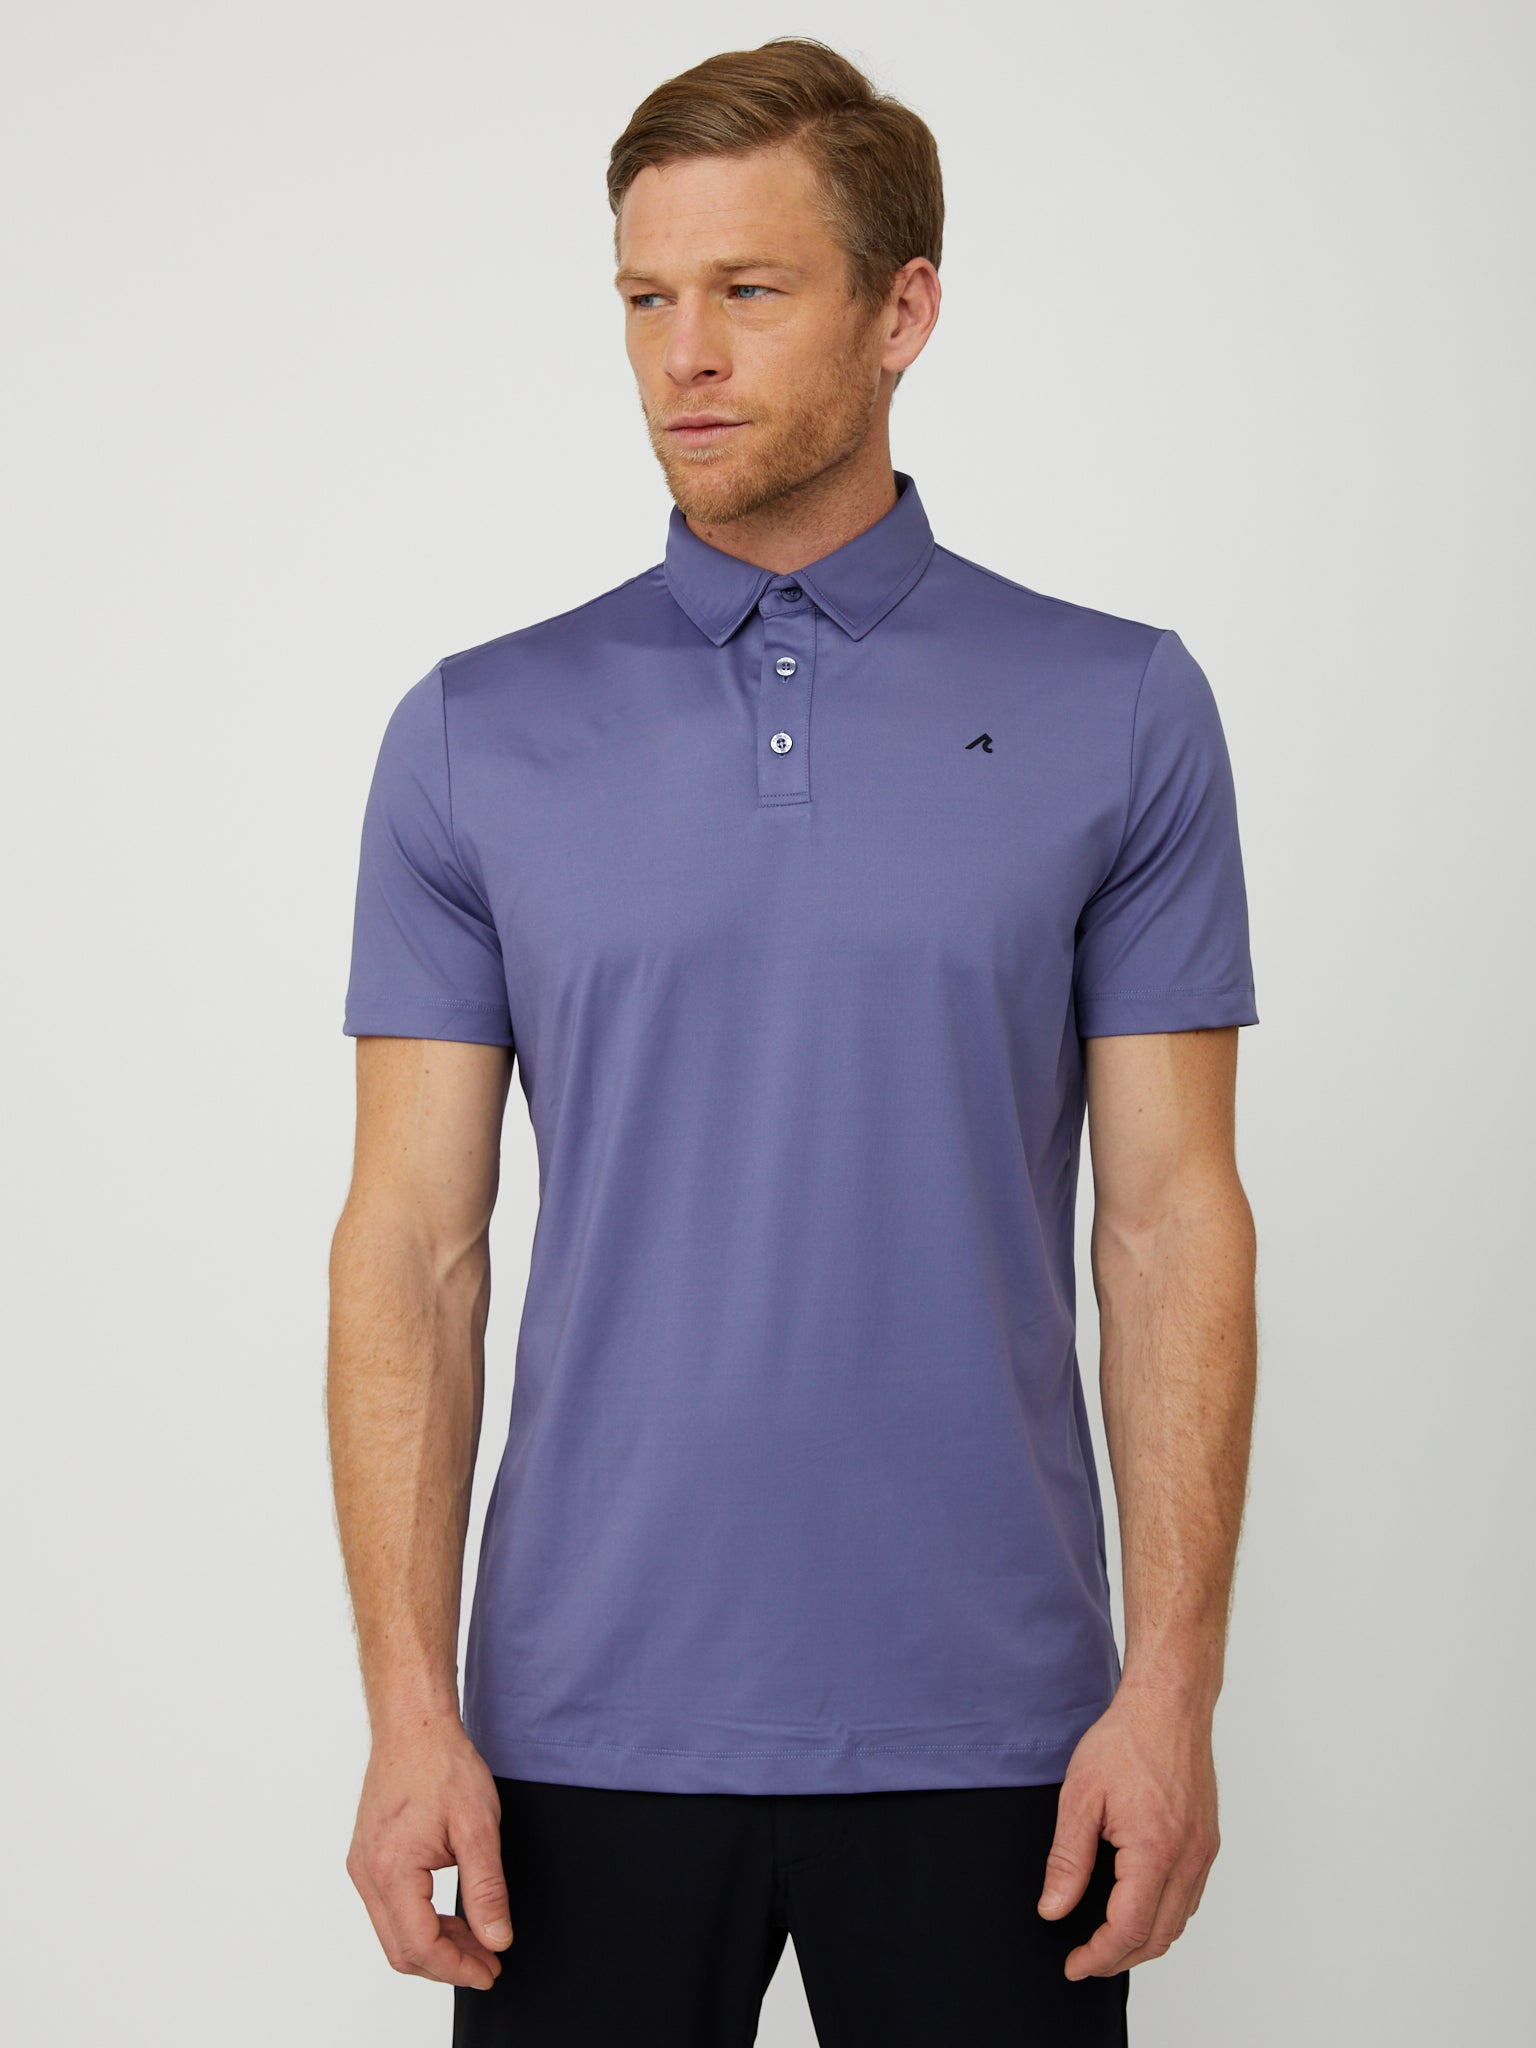 Degrom Polo in Heron/Black